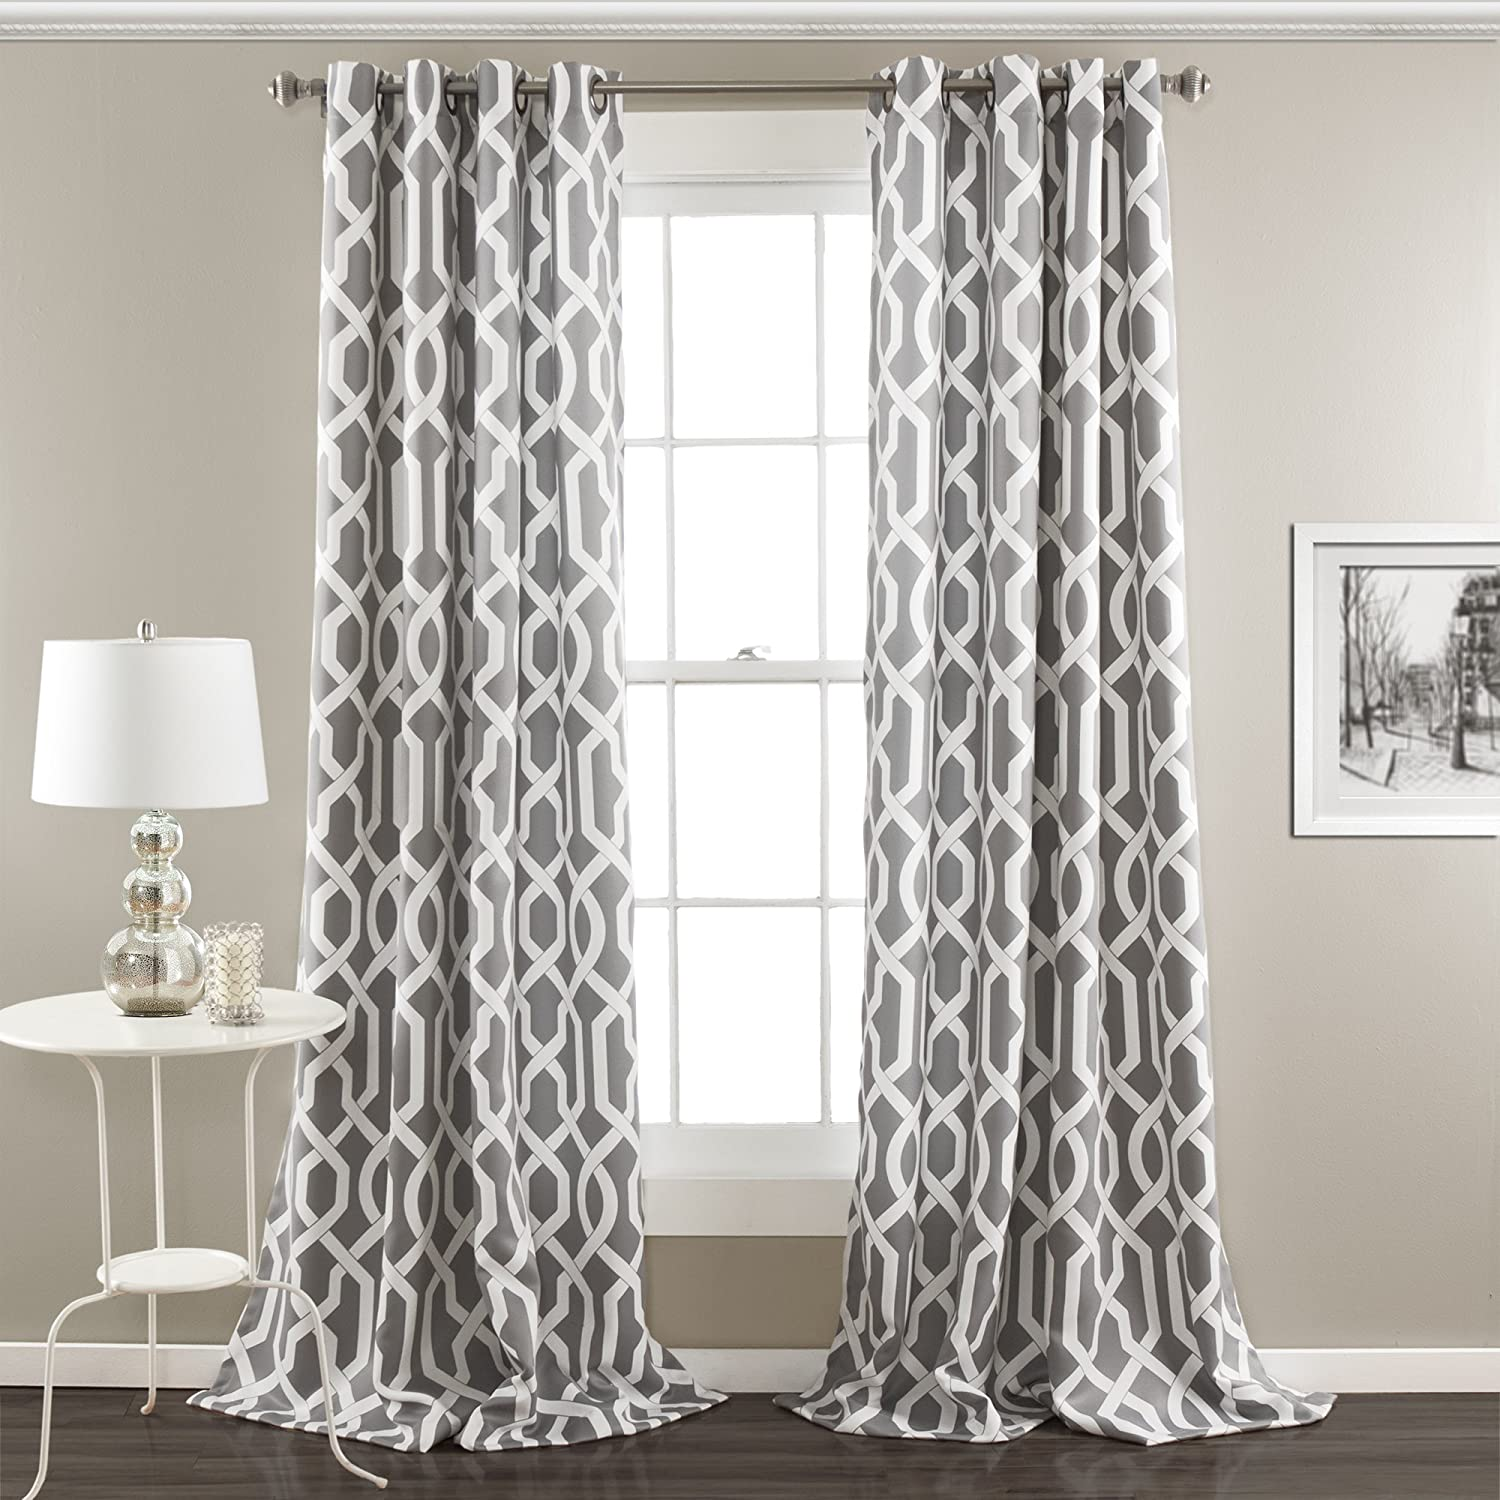 "Lush Decor Edward Trellis Curtains Room Darkening Gray Window Panel Set for Living, Dining, Bedroom (Pair), 95"" L"